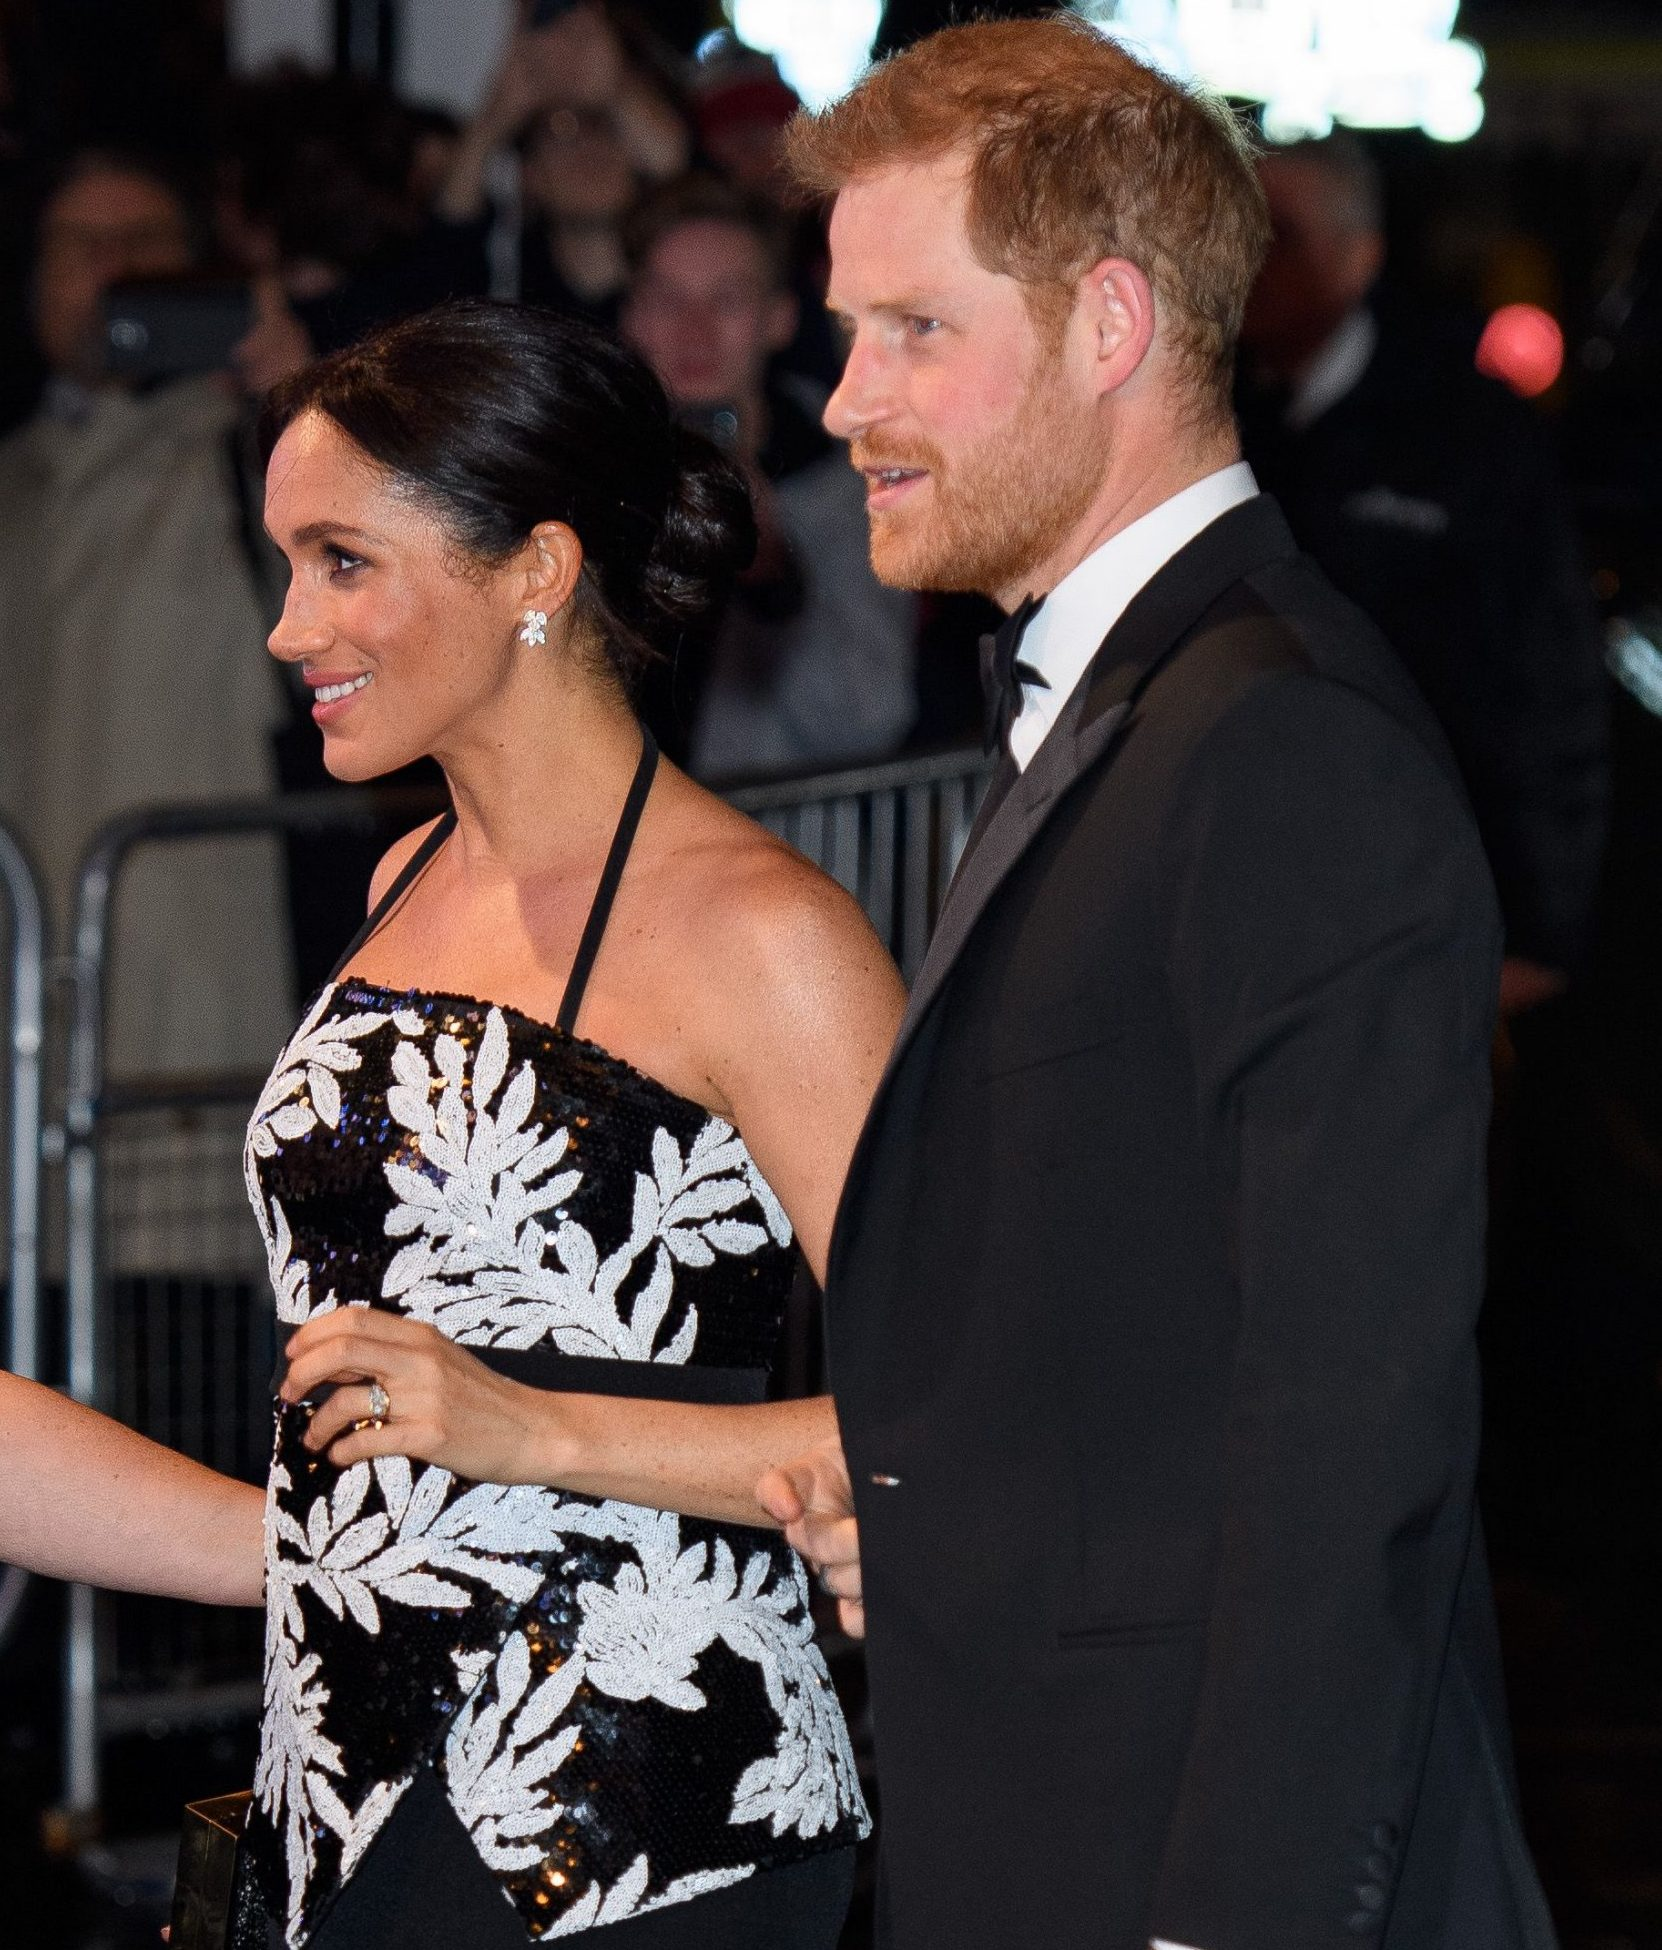 Mandatory Credit: Photo by Tim Rooke/REX/Shutterstock (9984998o) Meghan Duchess of Sussex and Prince Harry The Royal Variety Performance, Arrivals, London Palladium, UK - 19 Nov 2018